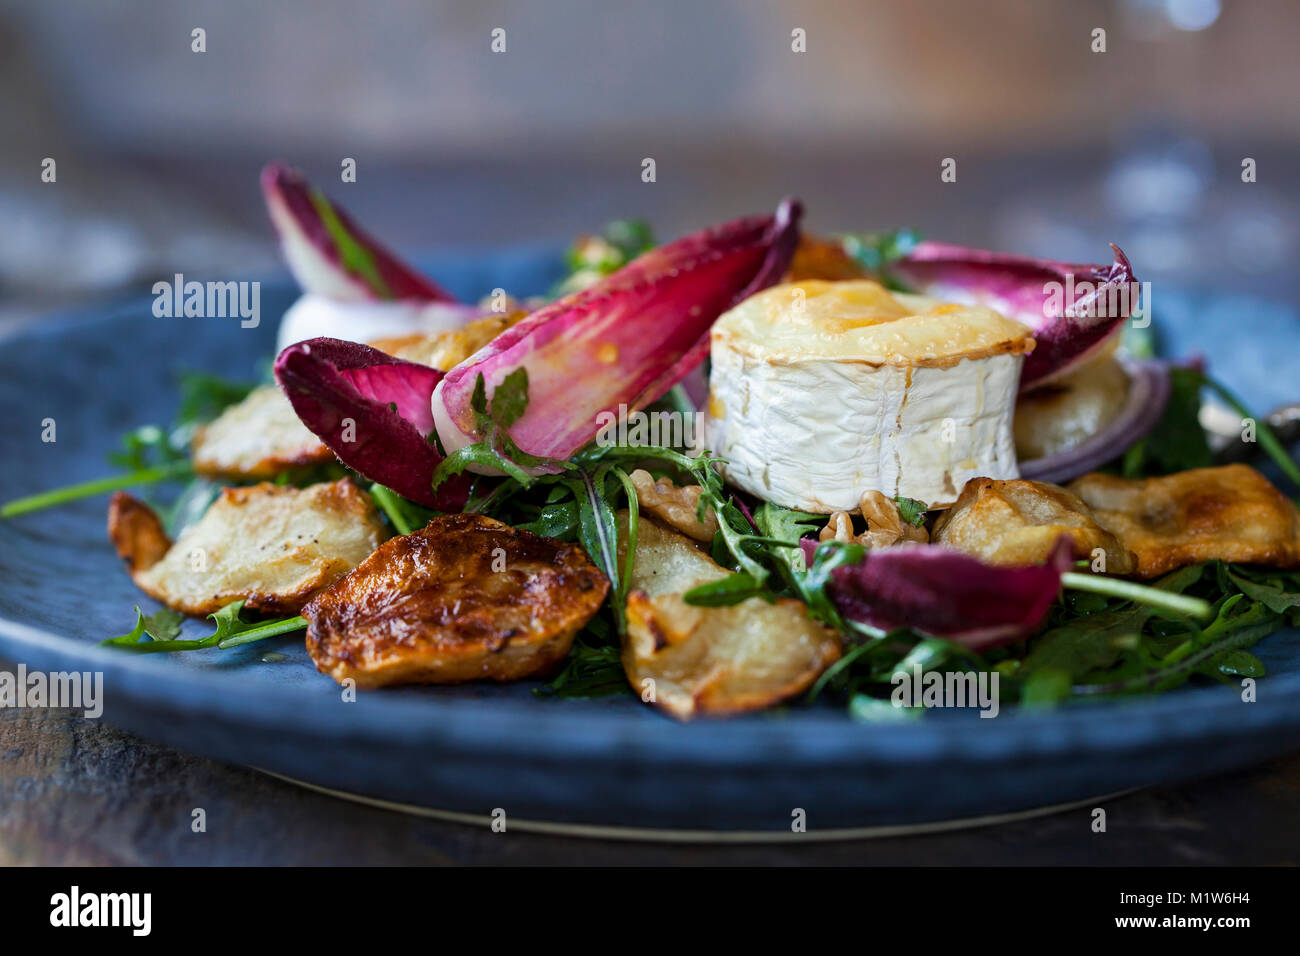 Jerusalem artichokes and grilled goat cheese salad with chicory and rocket - Stock Image